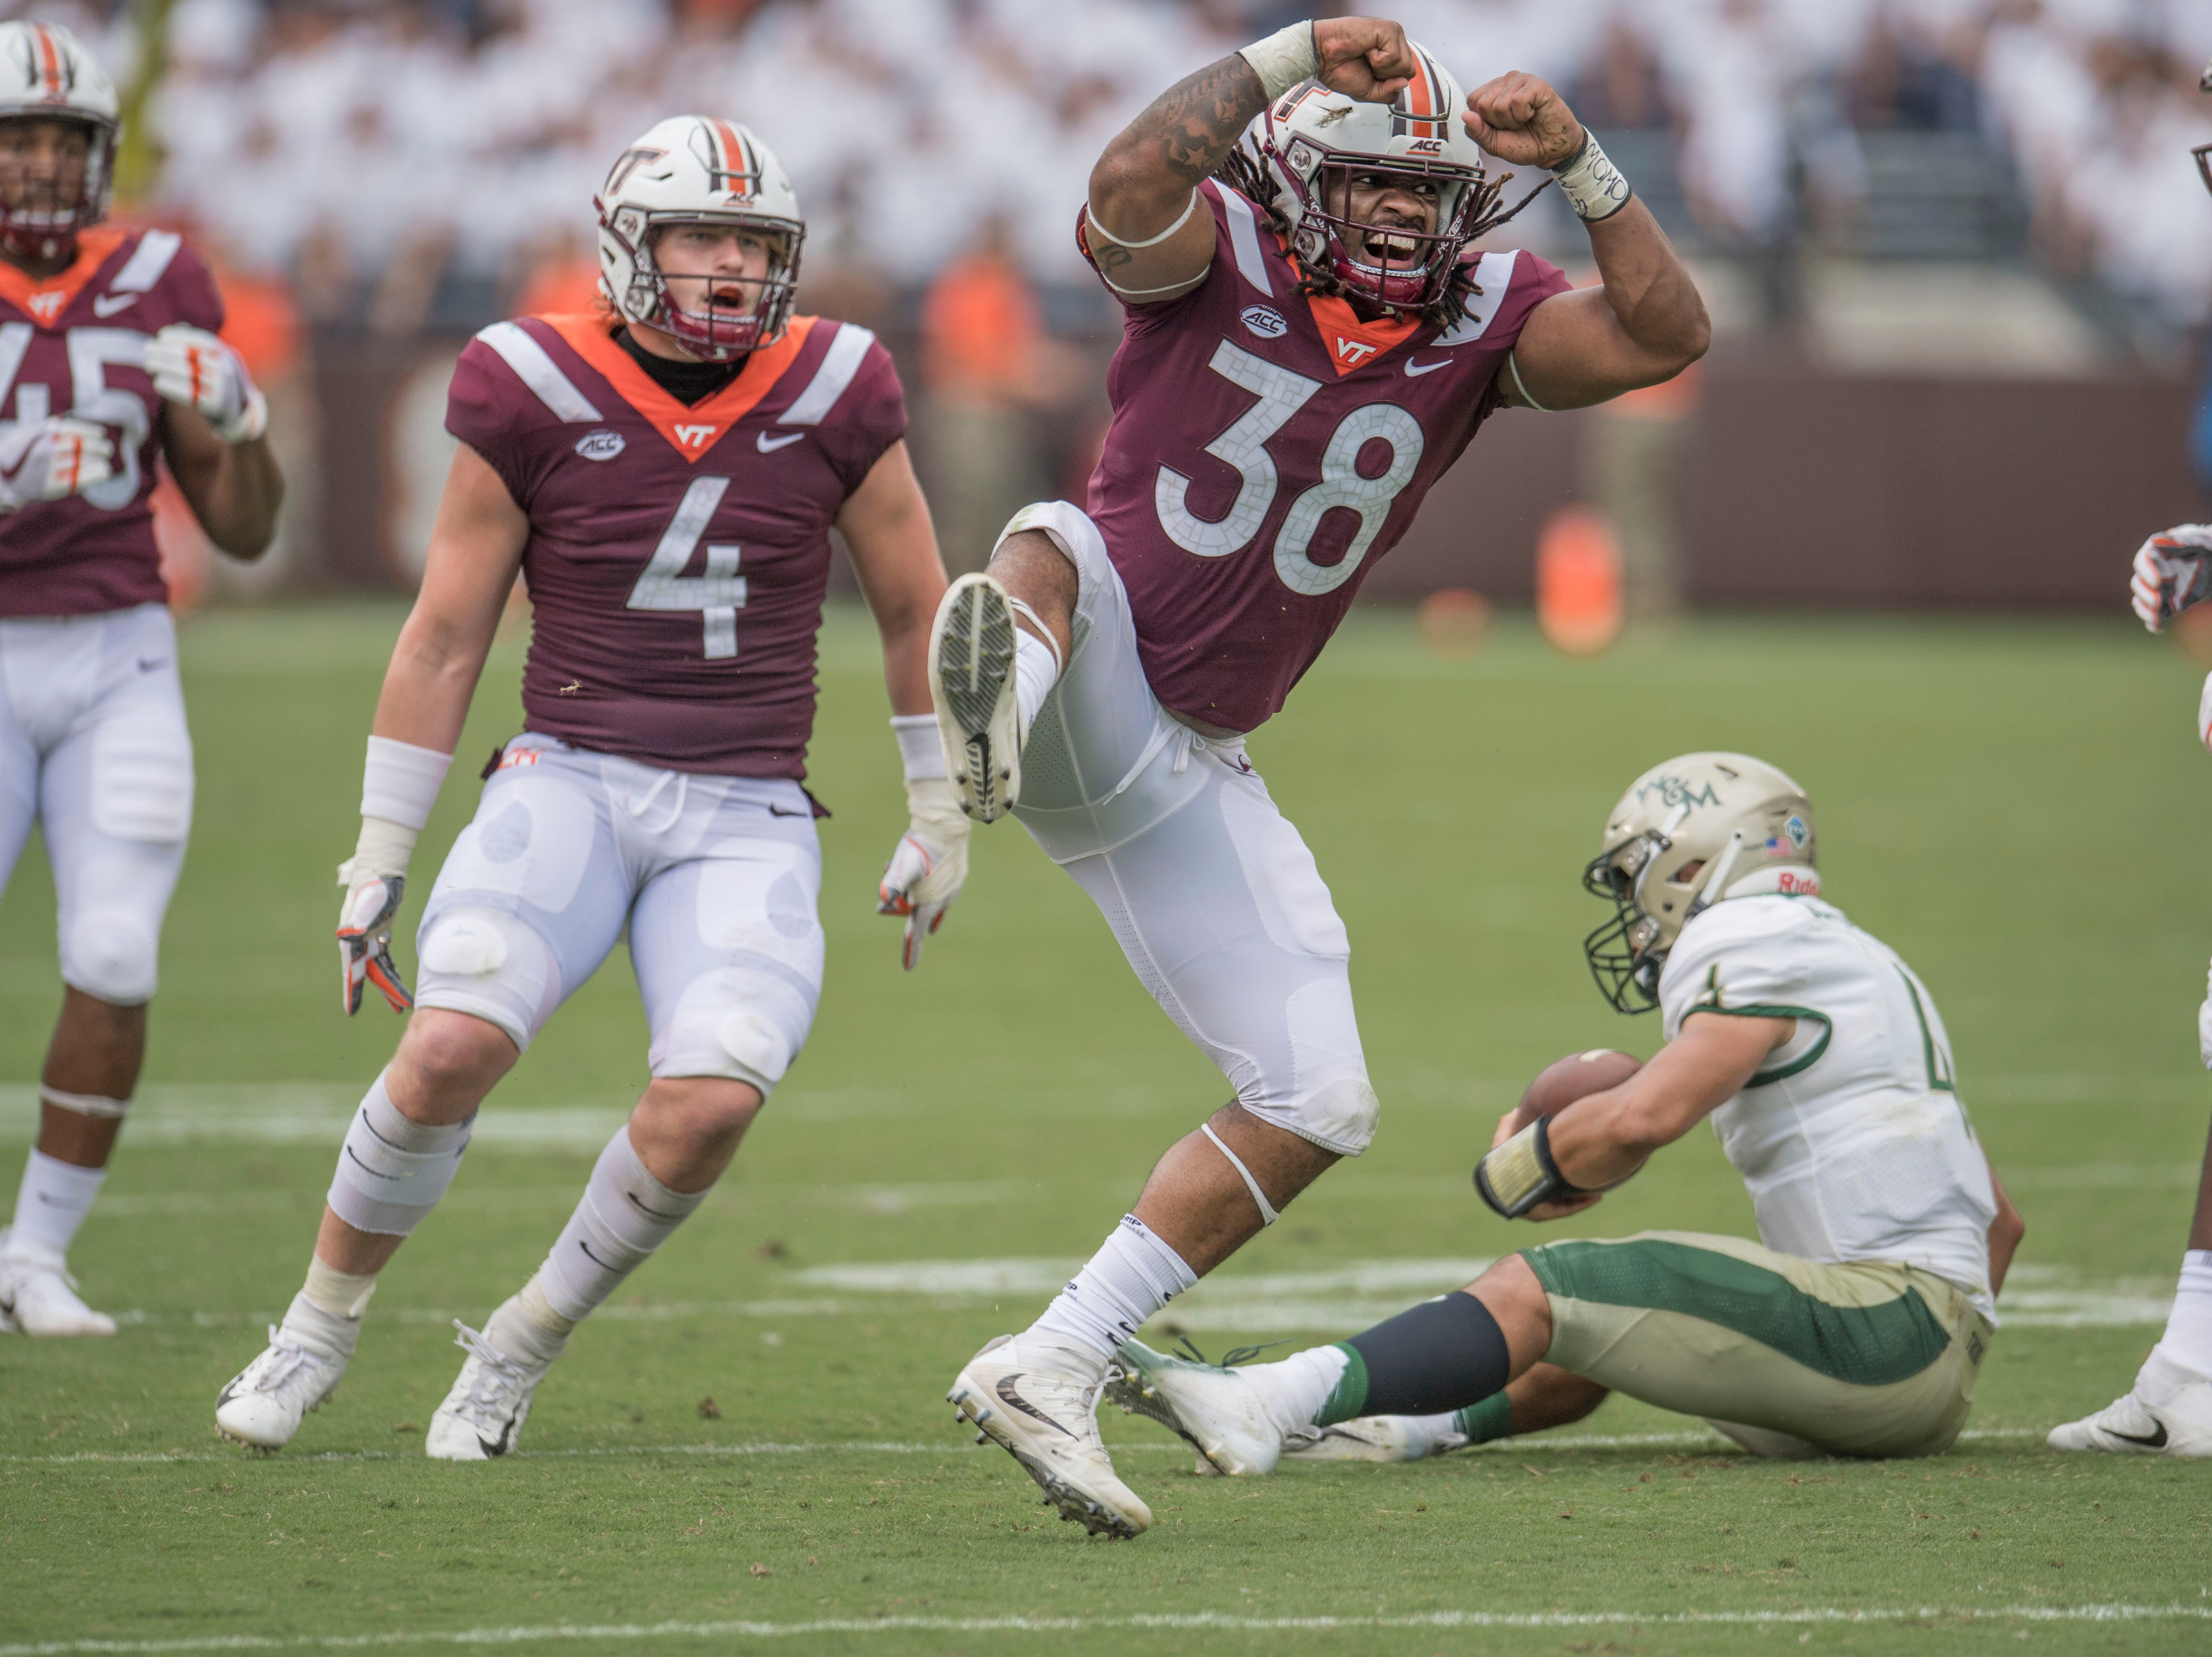 Virginia Tech Hokies linebacker Rico Kearney (38) celebrates after a sack of William & Mary quarterback Shon Mitchell in the second half at Lane Stadium.